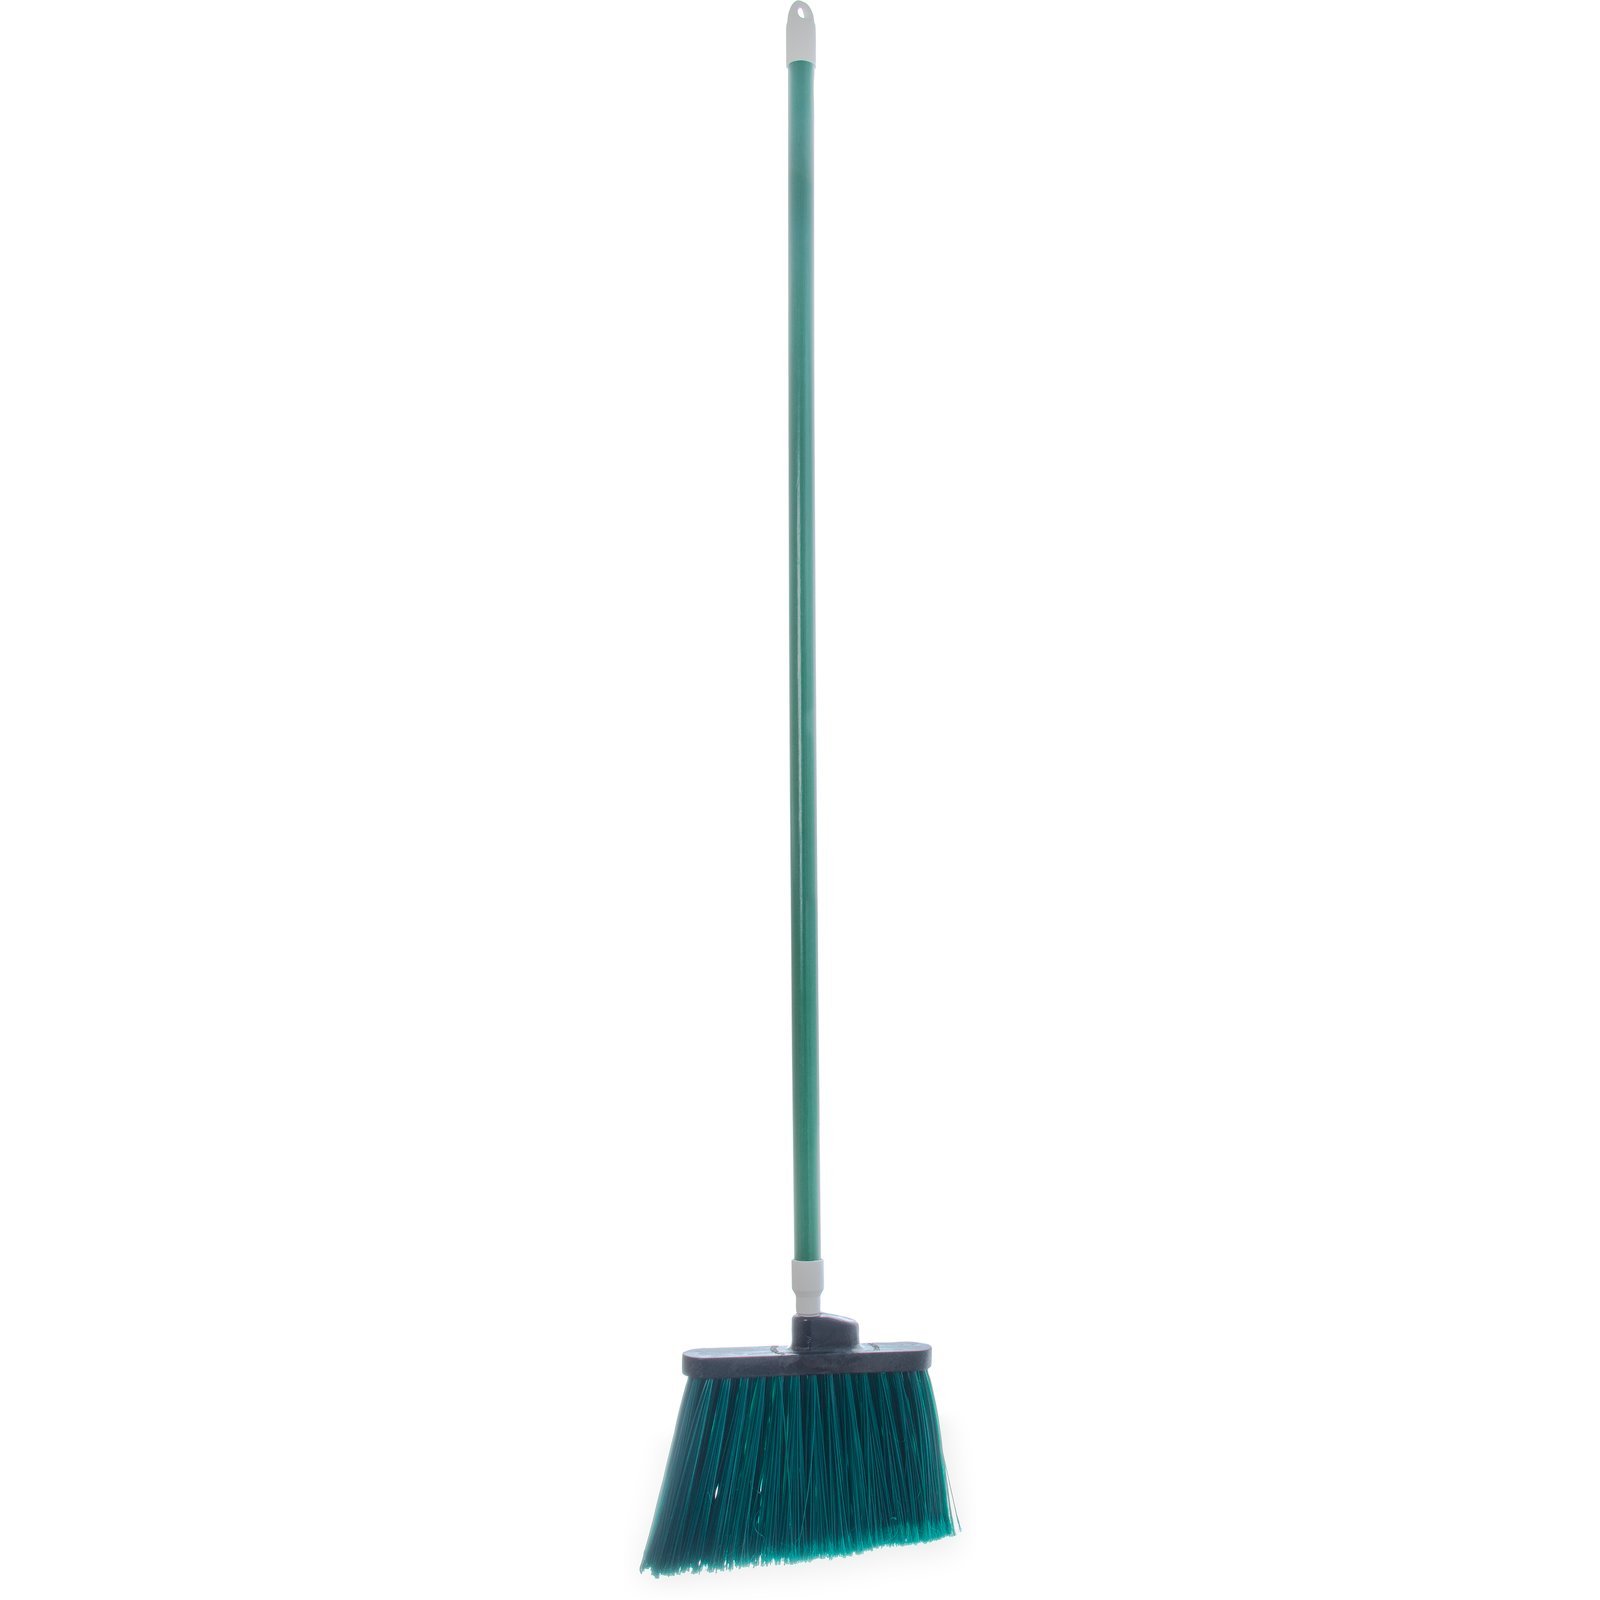 "BROOM 54"" FLAGGED ANGLE W/ POLYPROPYLENE BRISTLES GREEN"